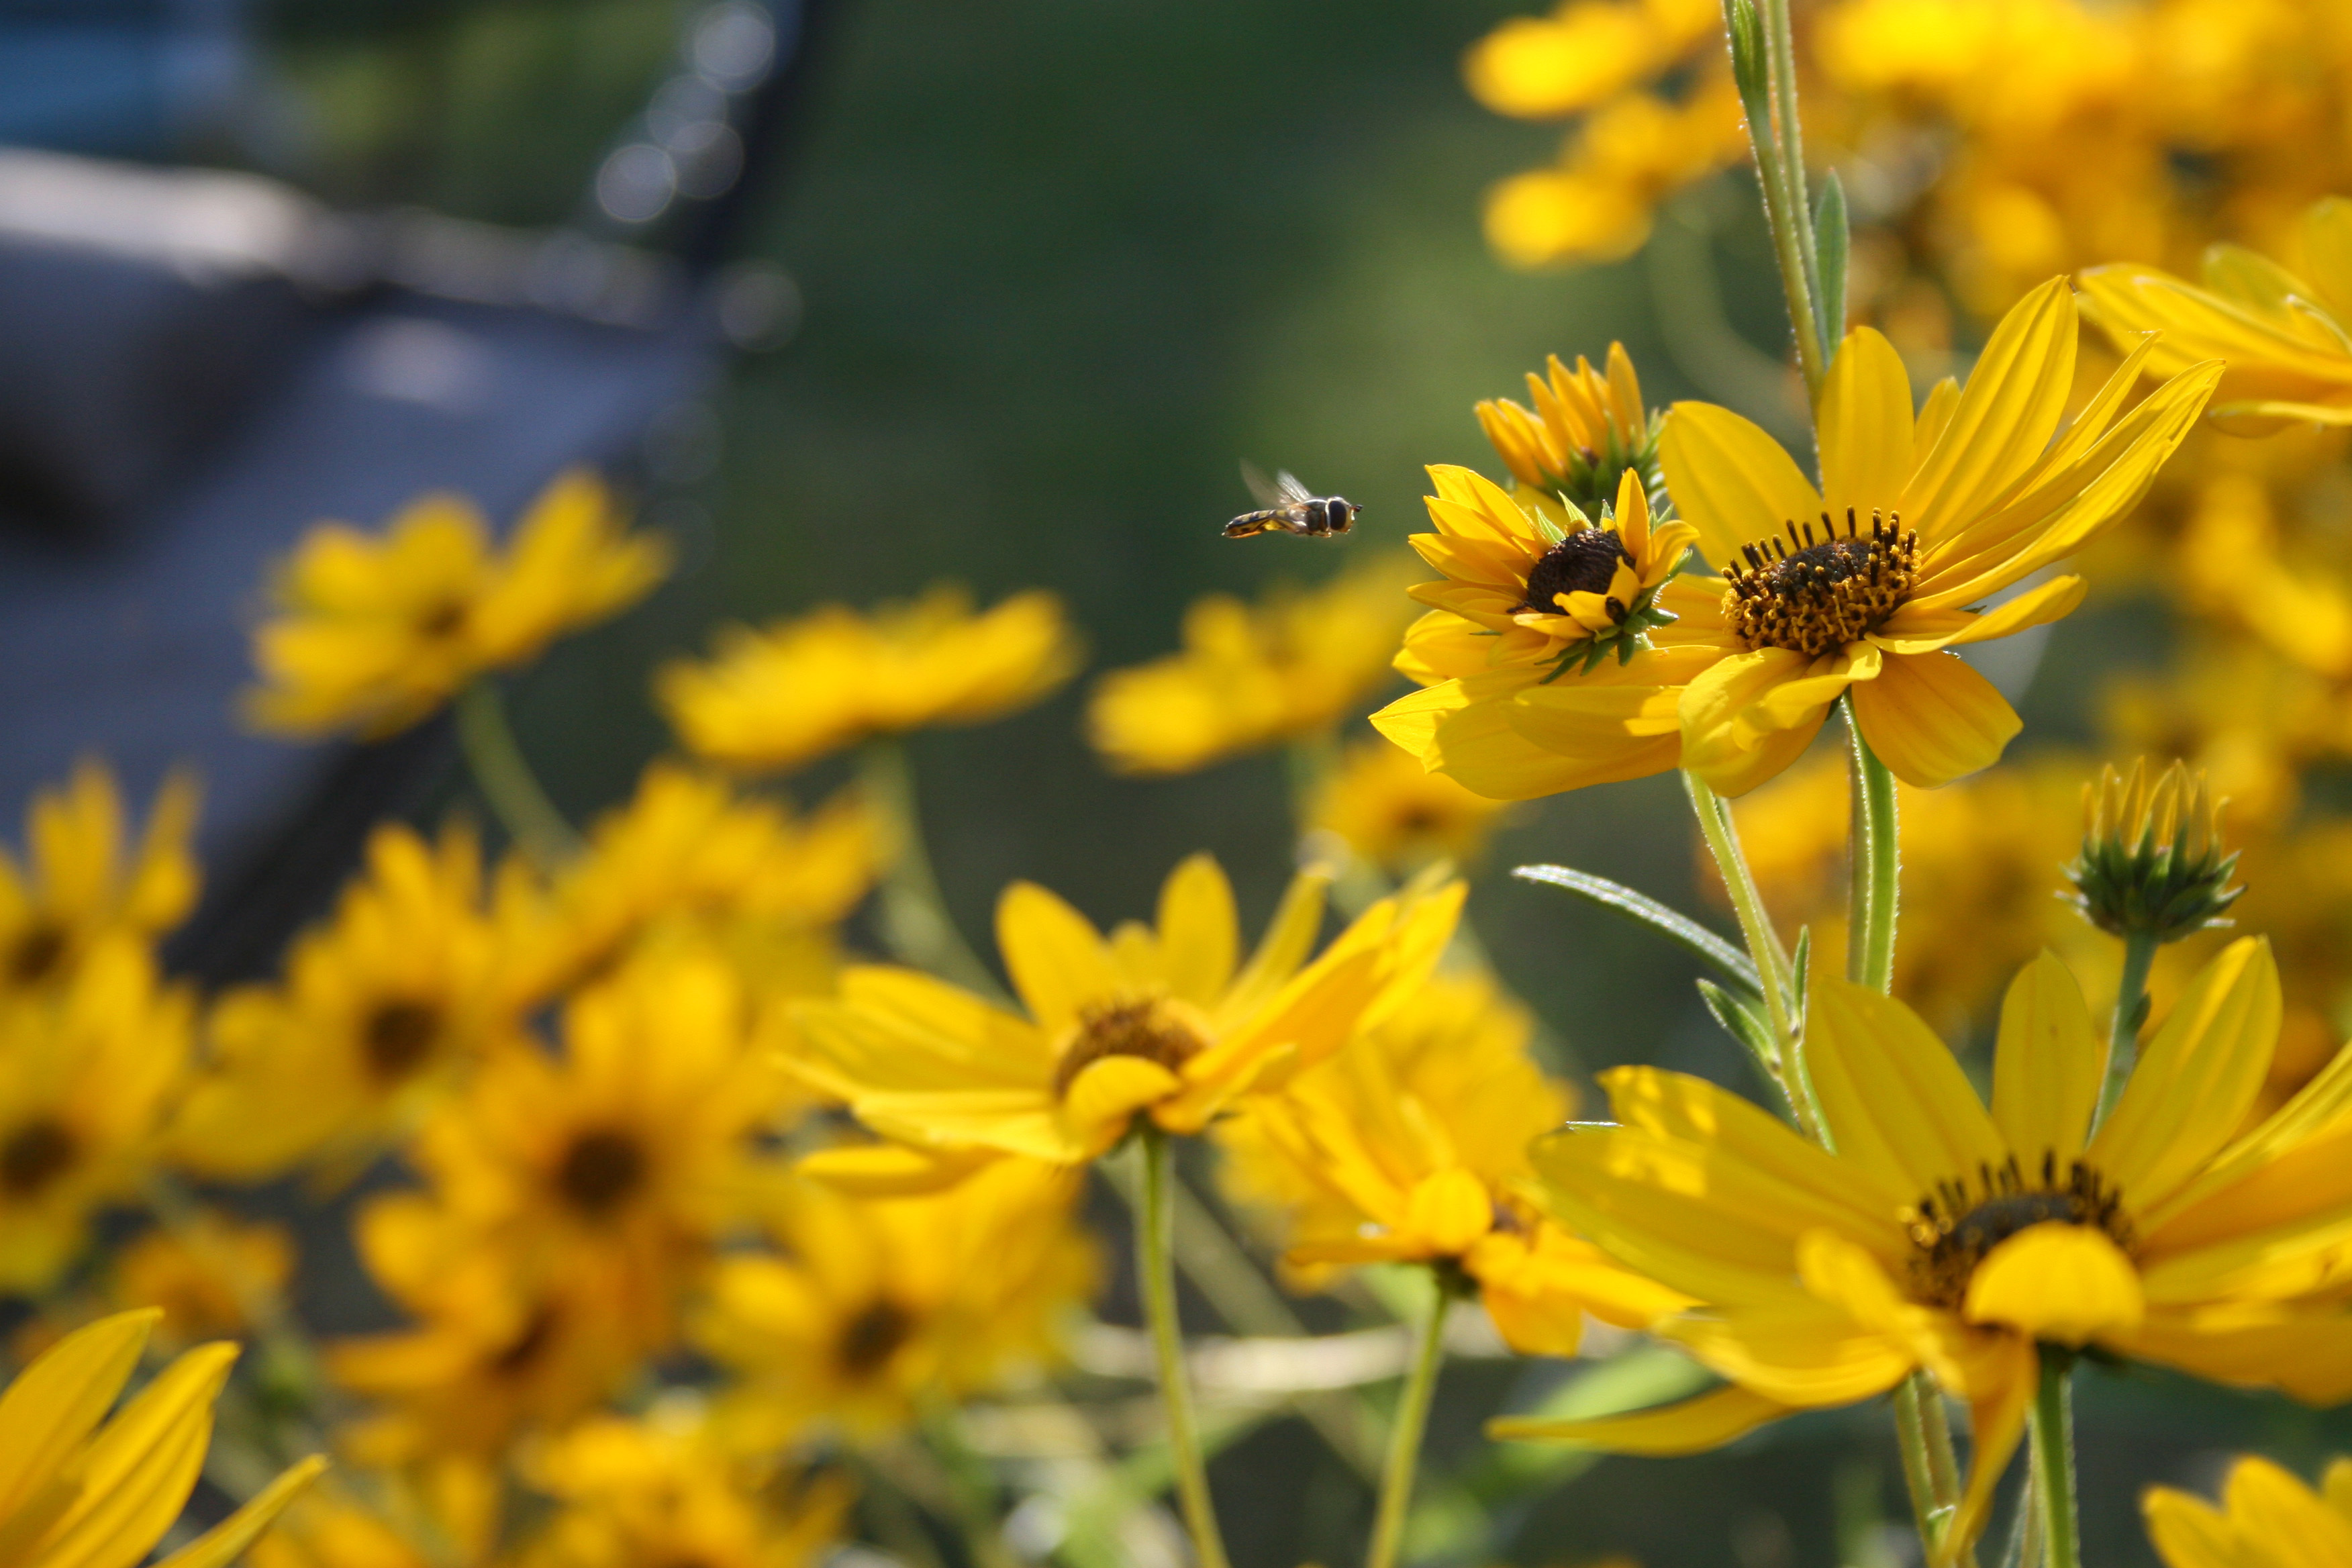 Up-coming workshop will cover how to select plants to attract pollinators. Participants will plant a container garden to take home.